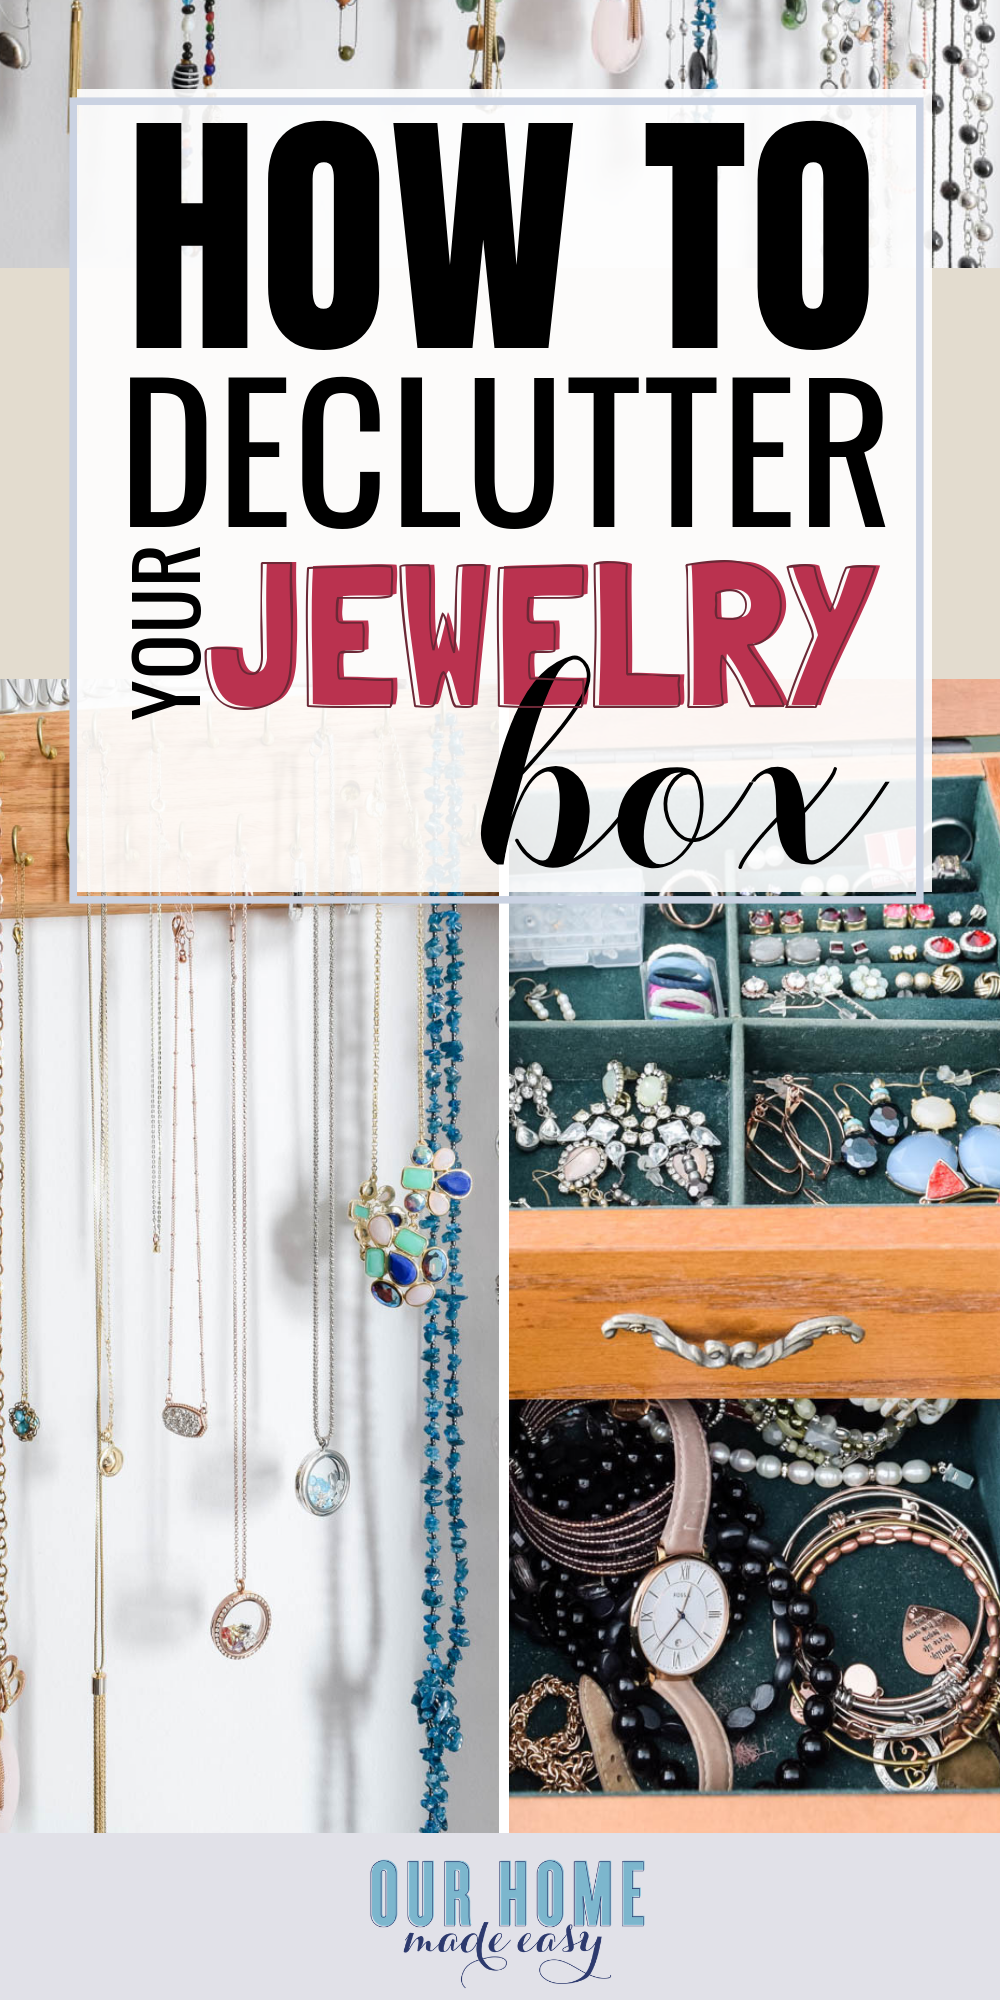 DIY Ideas on How to Organize Your Jewelry for good! Declutter and organize your jewelry so that you can quickly find what you need in the mornings! #organization #homedecor #organize #ourhomemadeeasy